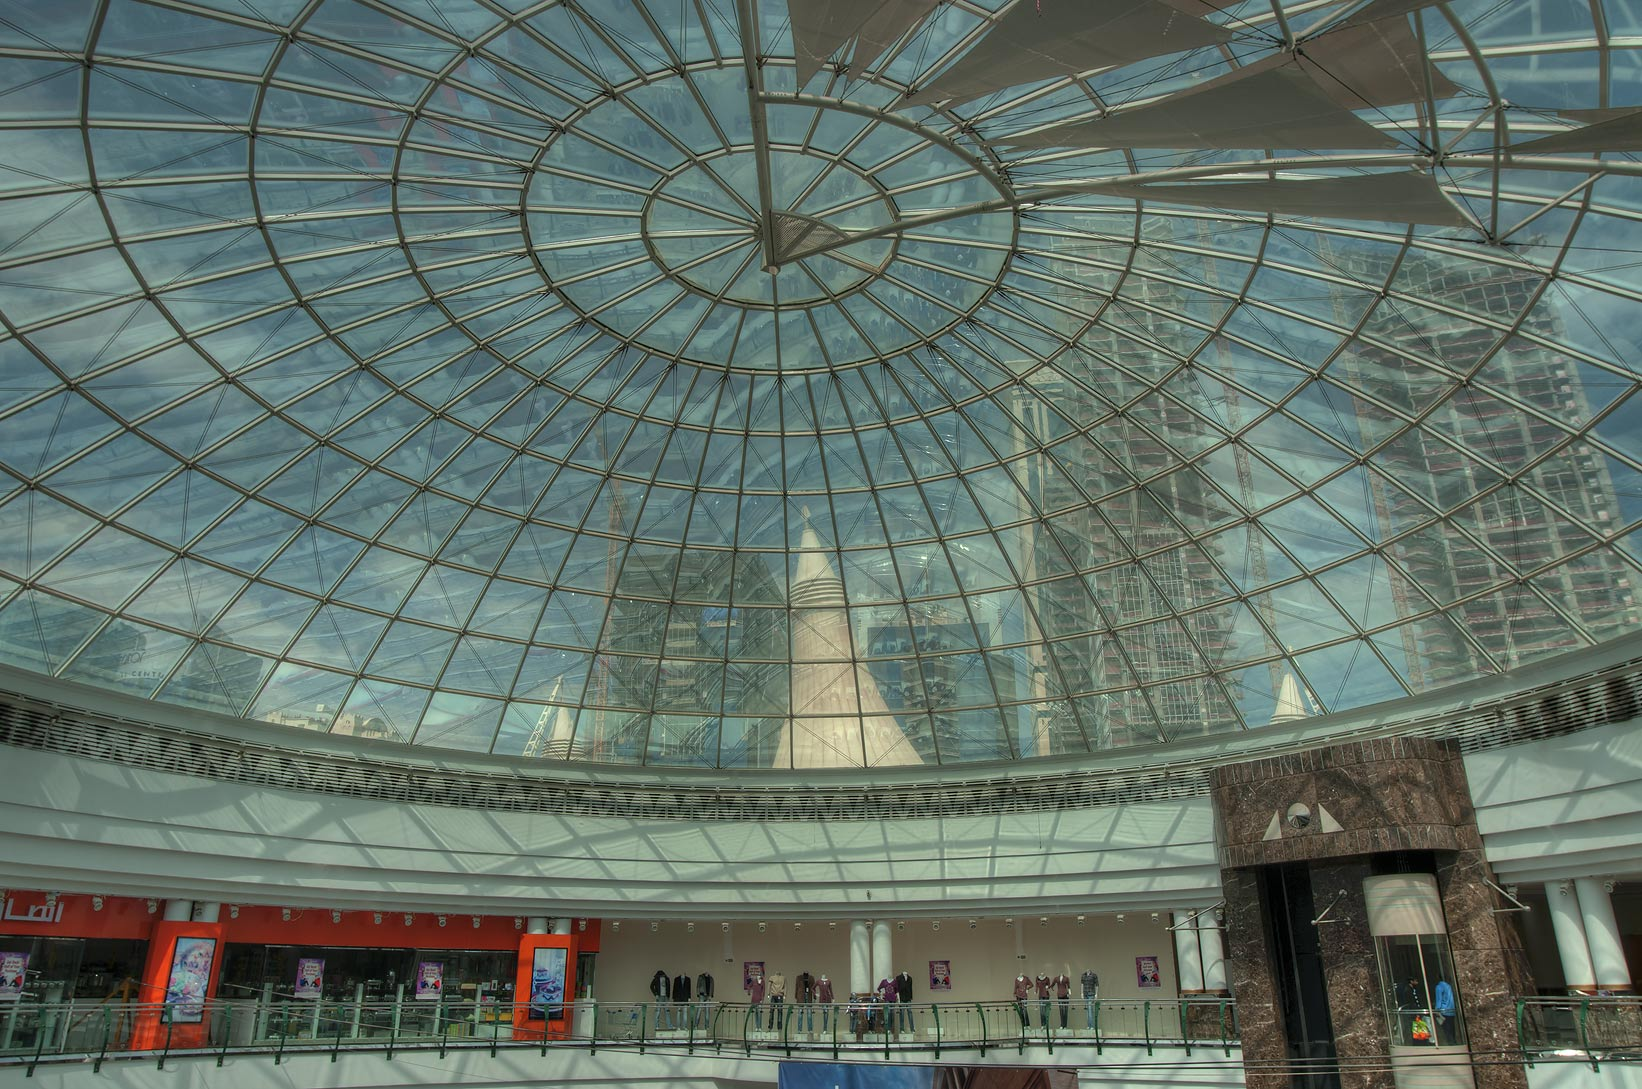 Upper floor and a glass roof of City Center Mall. Doha, Qatar